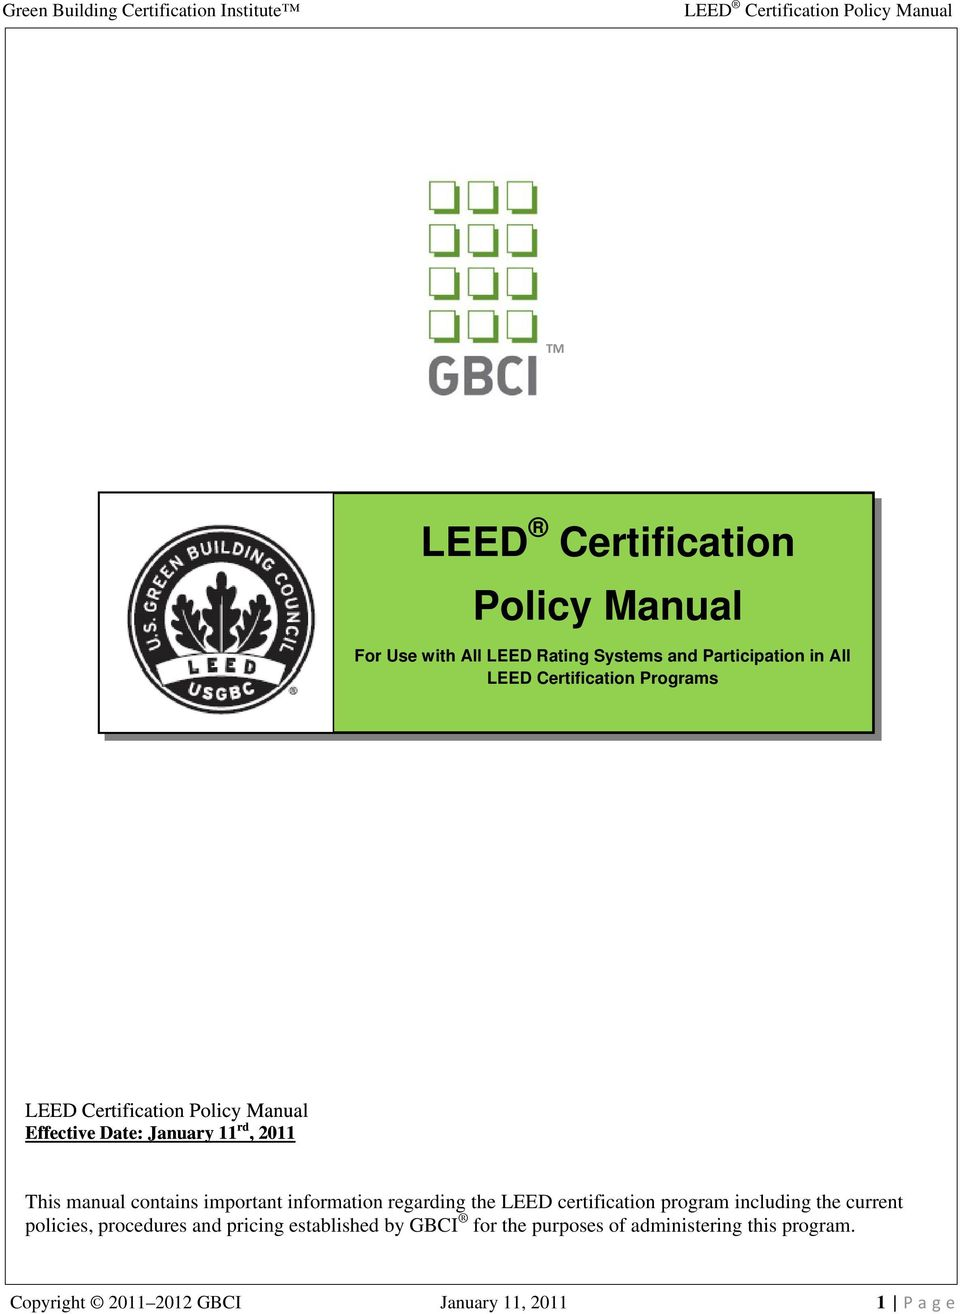 Leed Certification Policy Manual Pdf